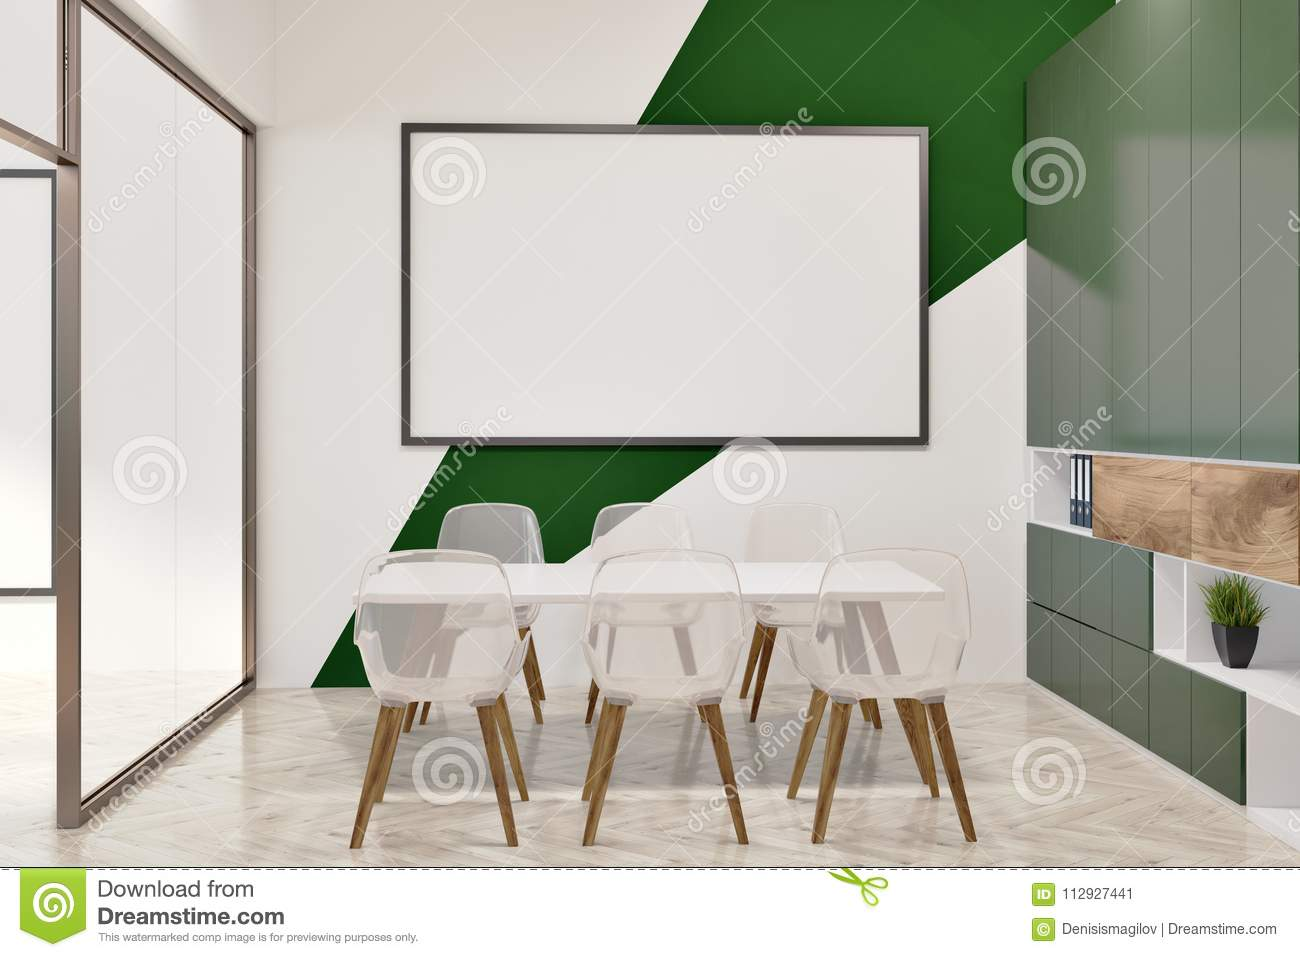 Download White And Green Office Conference Room, Whiteboard Stock  Illustration   Illustration Of Mockup,